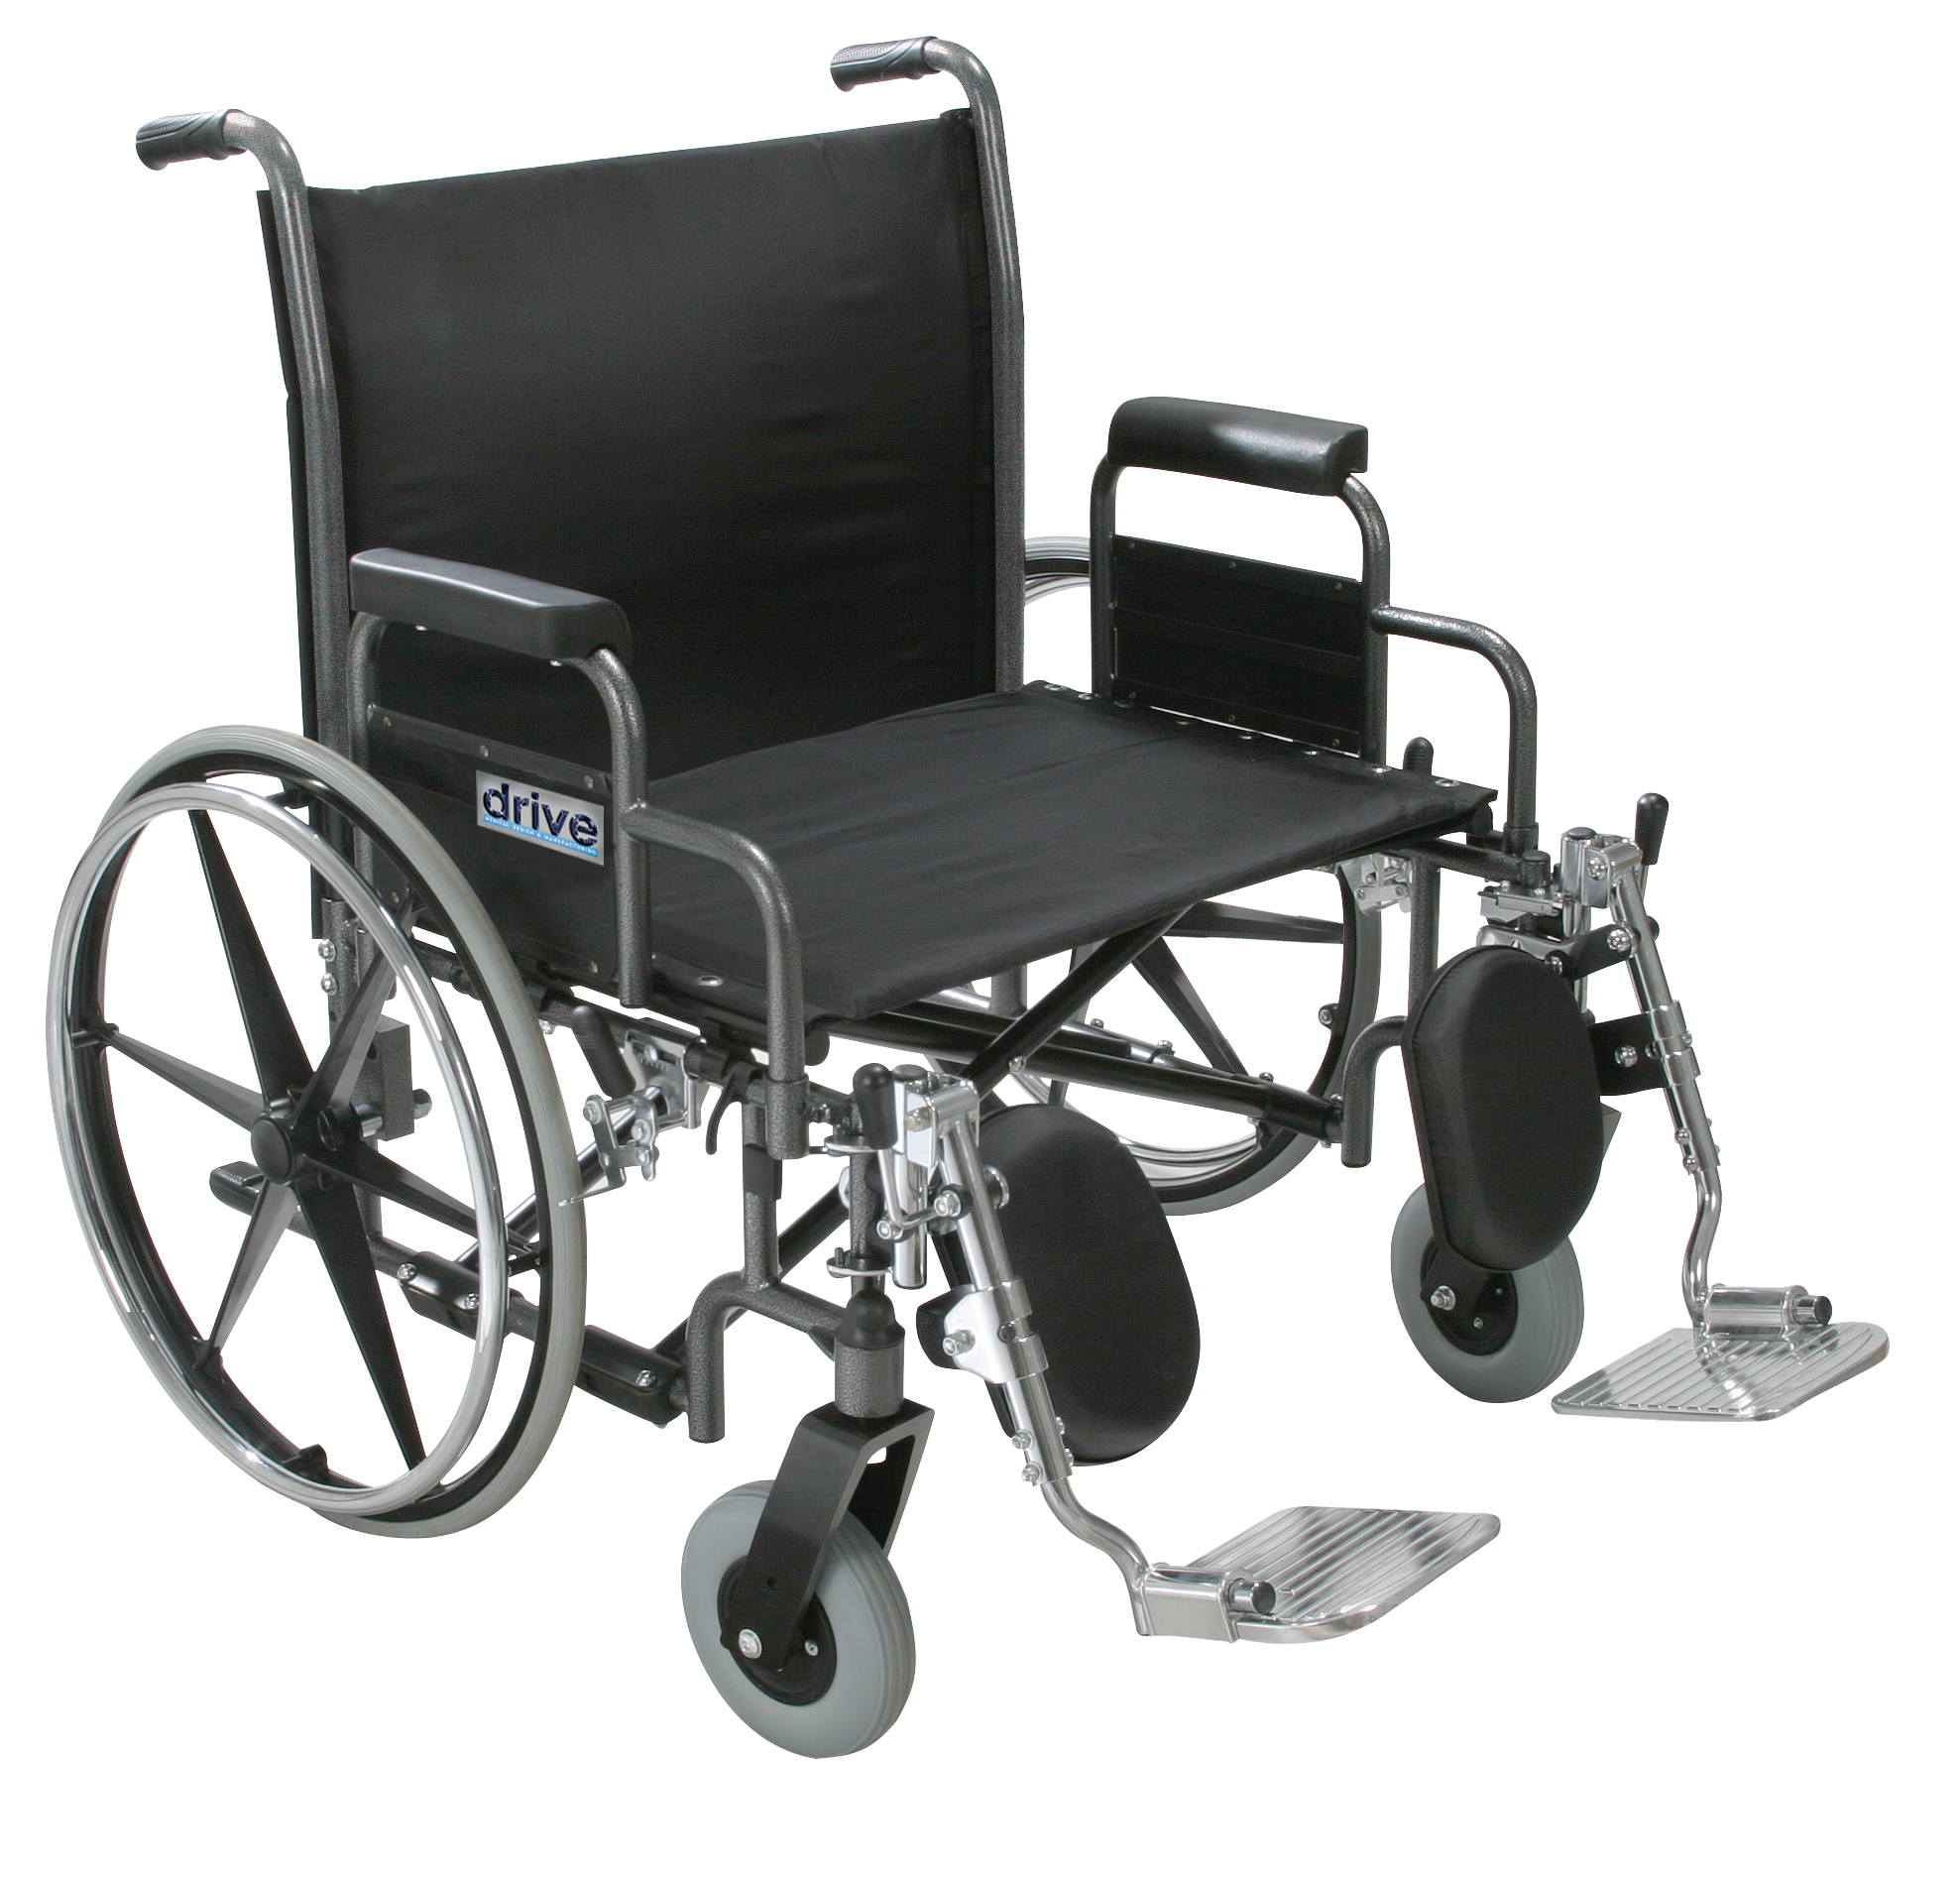 Drive Sentra Heavy Duty Wheelchair with Various Arm Styles